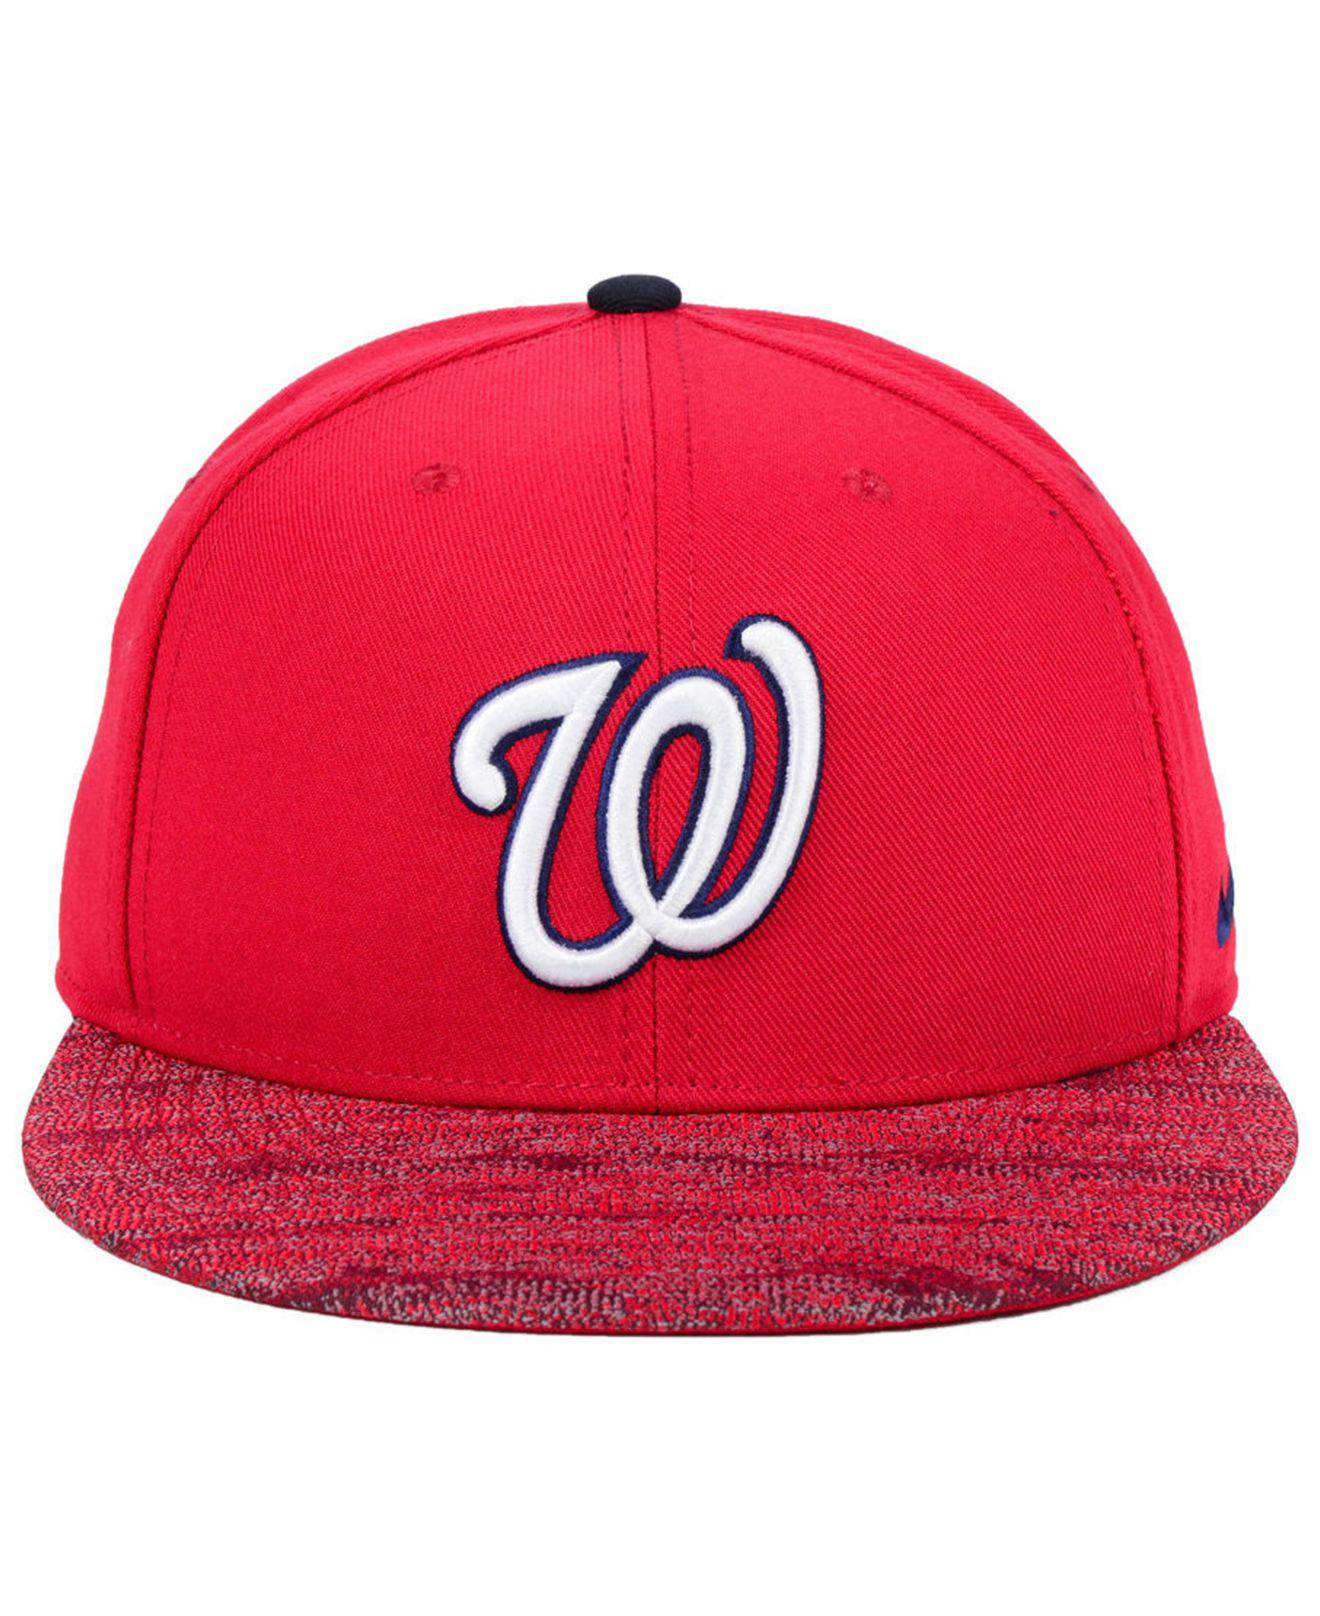 4b2eb9d4876 shopping lyst nike washington nationals reverse new day snapback cap in red  for men 6e5b4 18bd1